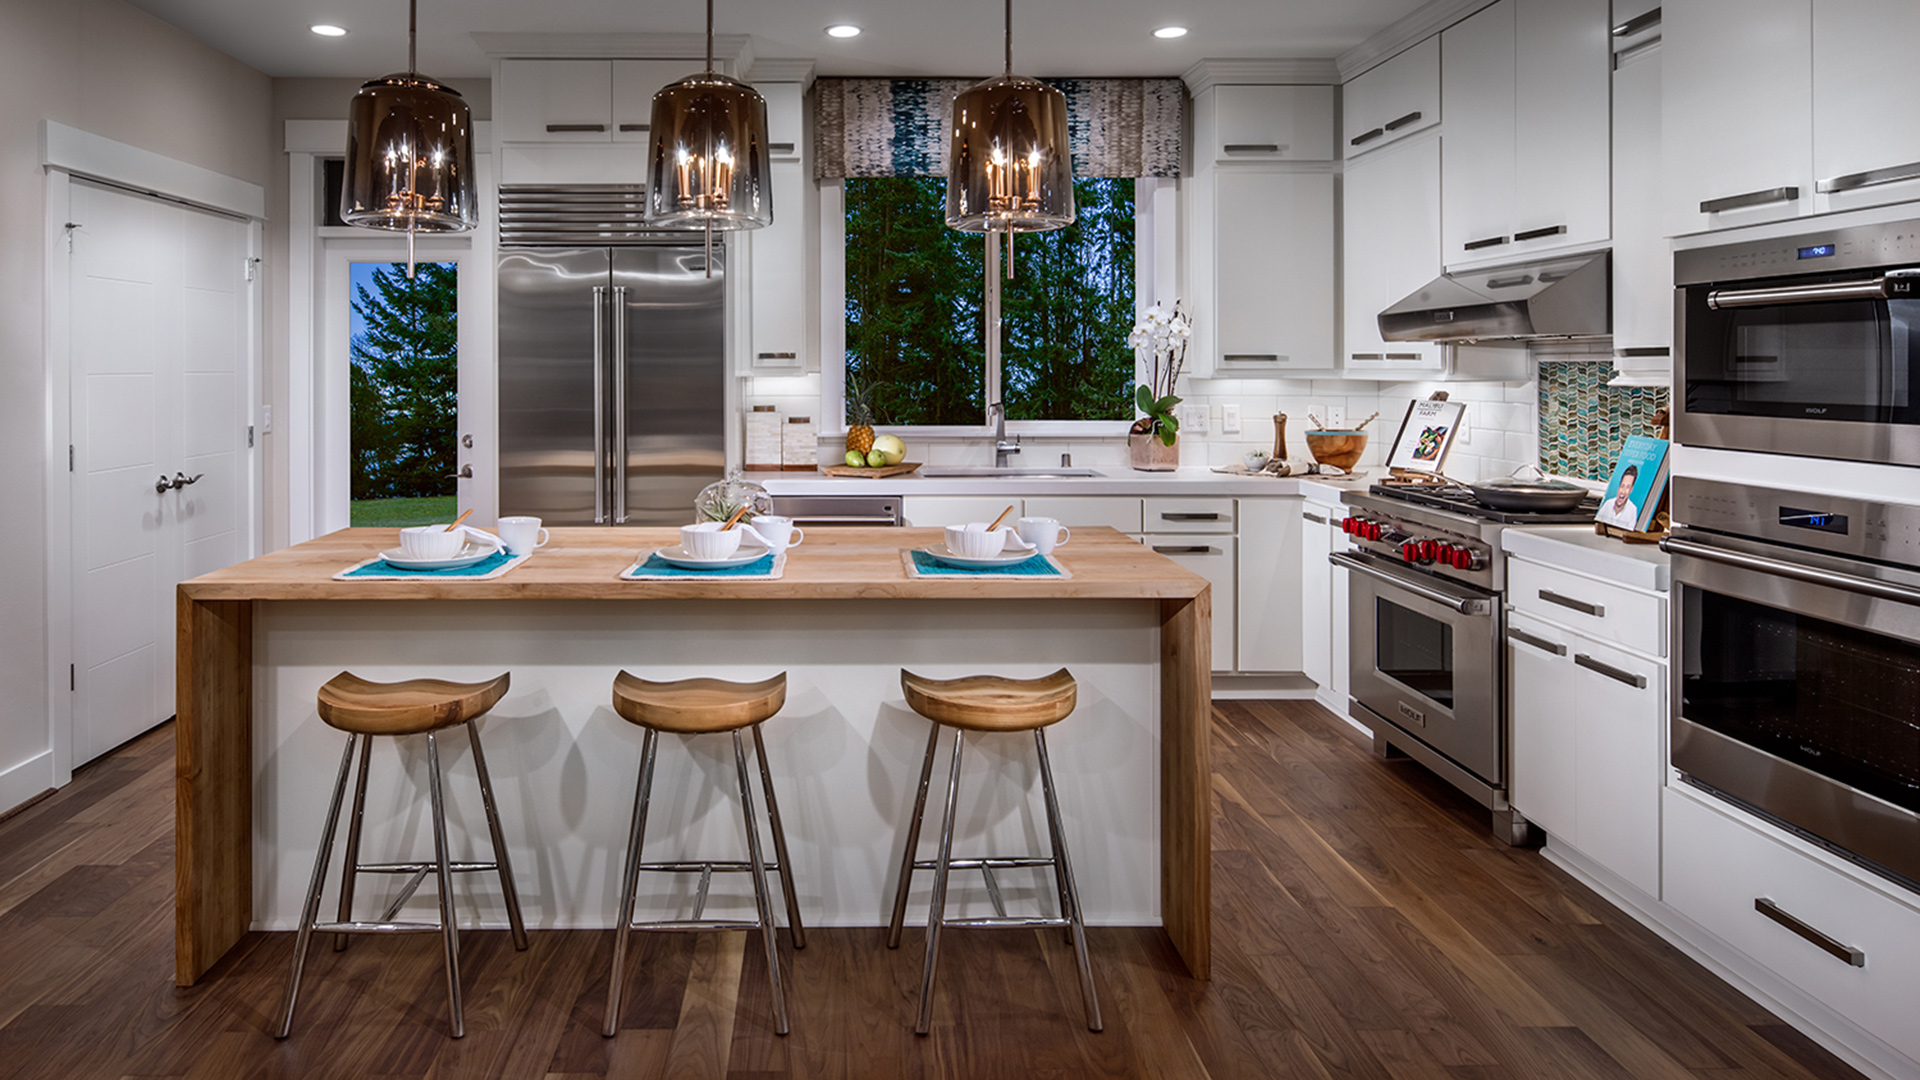 Create Your Dream Kitchen With Hundreds Of Personalization Opportunities At  The Design Studio.